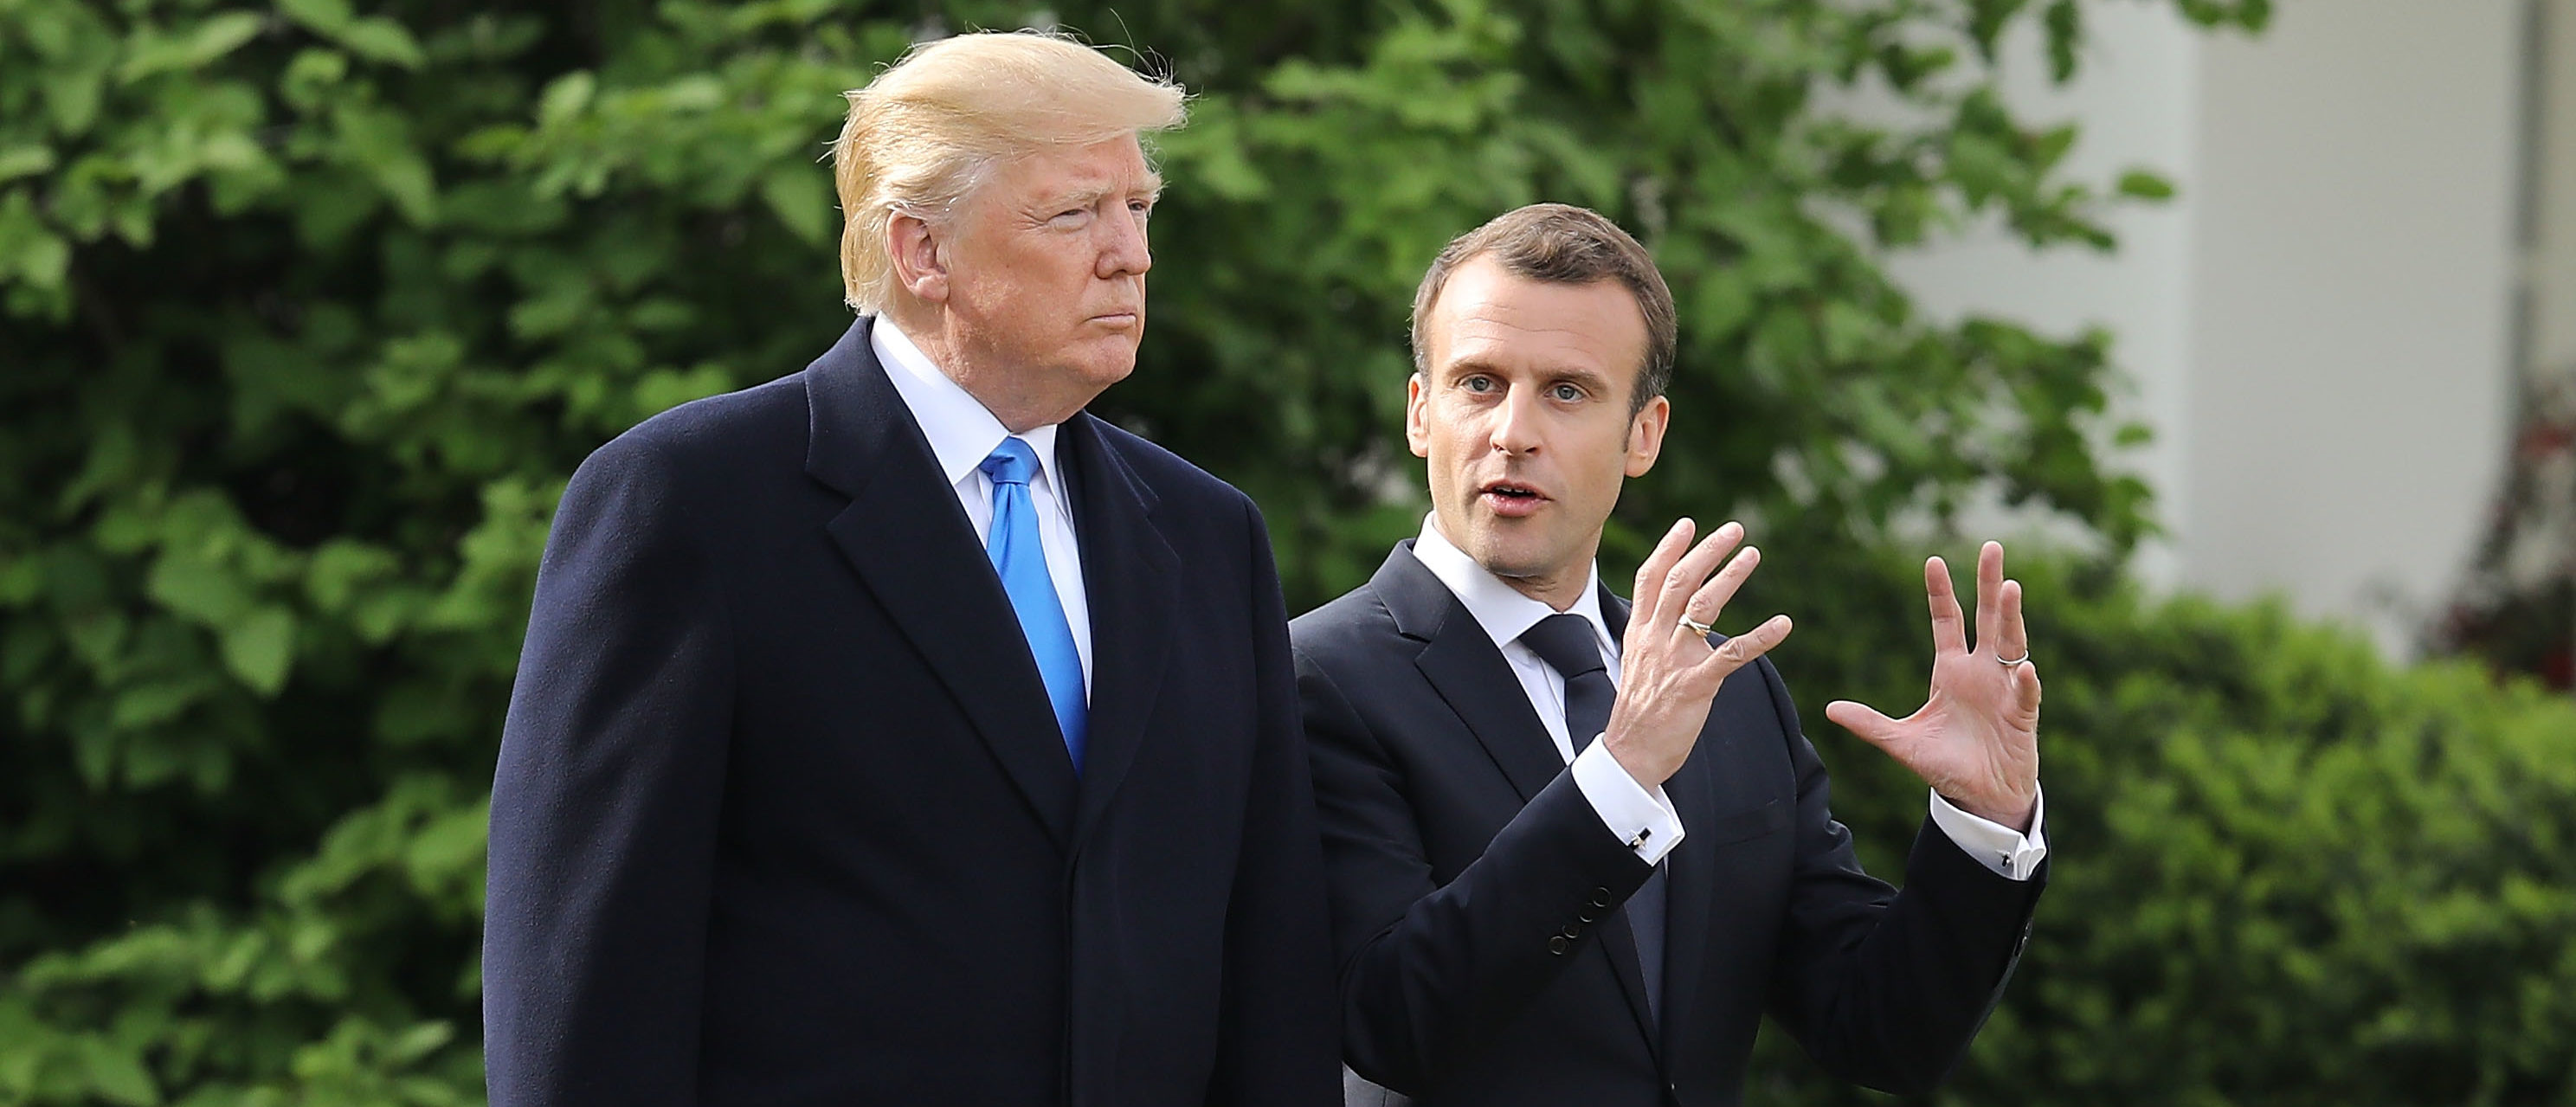 WASHINGTON, DC - APRIL 23: U.S President Donald Trump (L) and French President Emmanuel Macron walk out of the White House before participating in a tree-planting ceremony on the South Lawn April 23, 2018 in Washington, DC. Trump is hosting Macron for a two day offical visit that will include dinner at George Washington's Mount Vernon, a tree planting on the White House South Lawn and a joint news conference. (Photo by Chip Somodevilla/Getty Images)